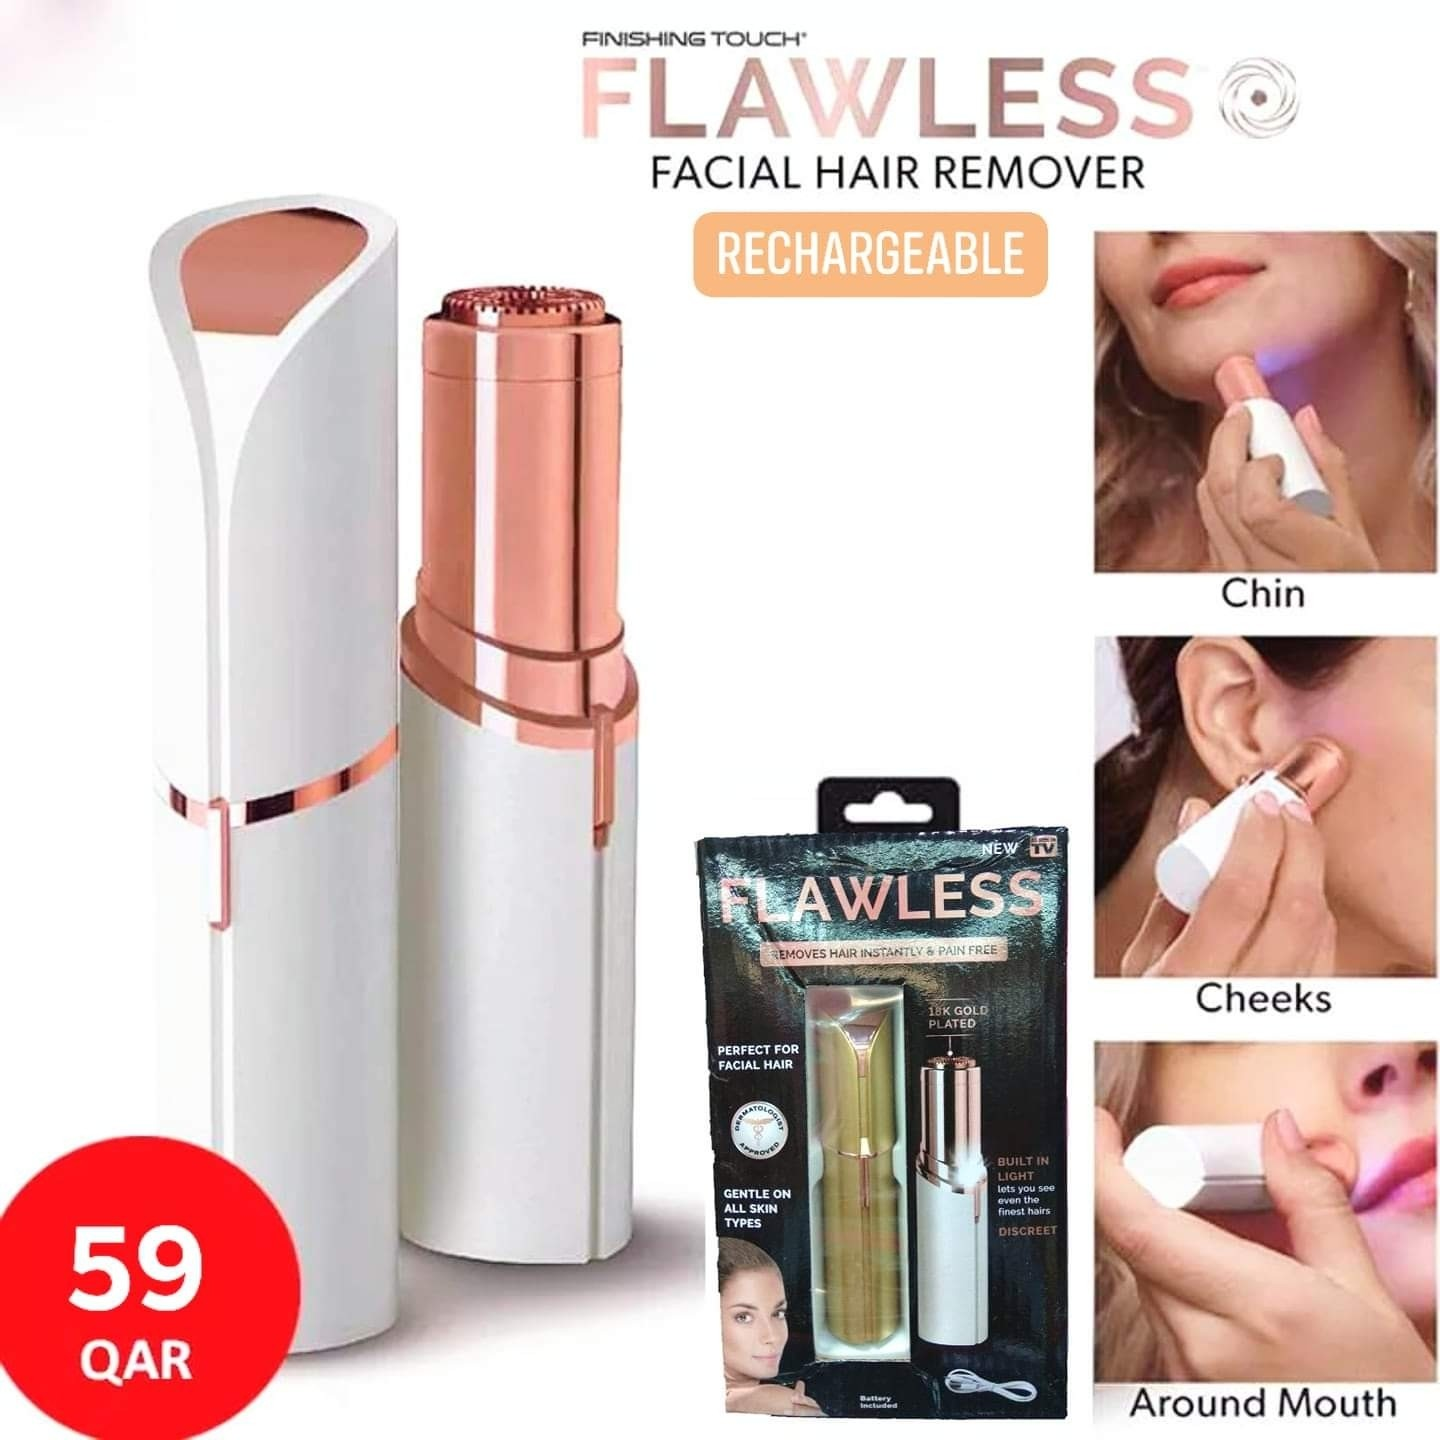 Flawless Facial Hair Eyebrow Remover - Rechargeable